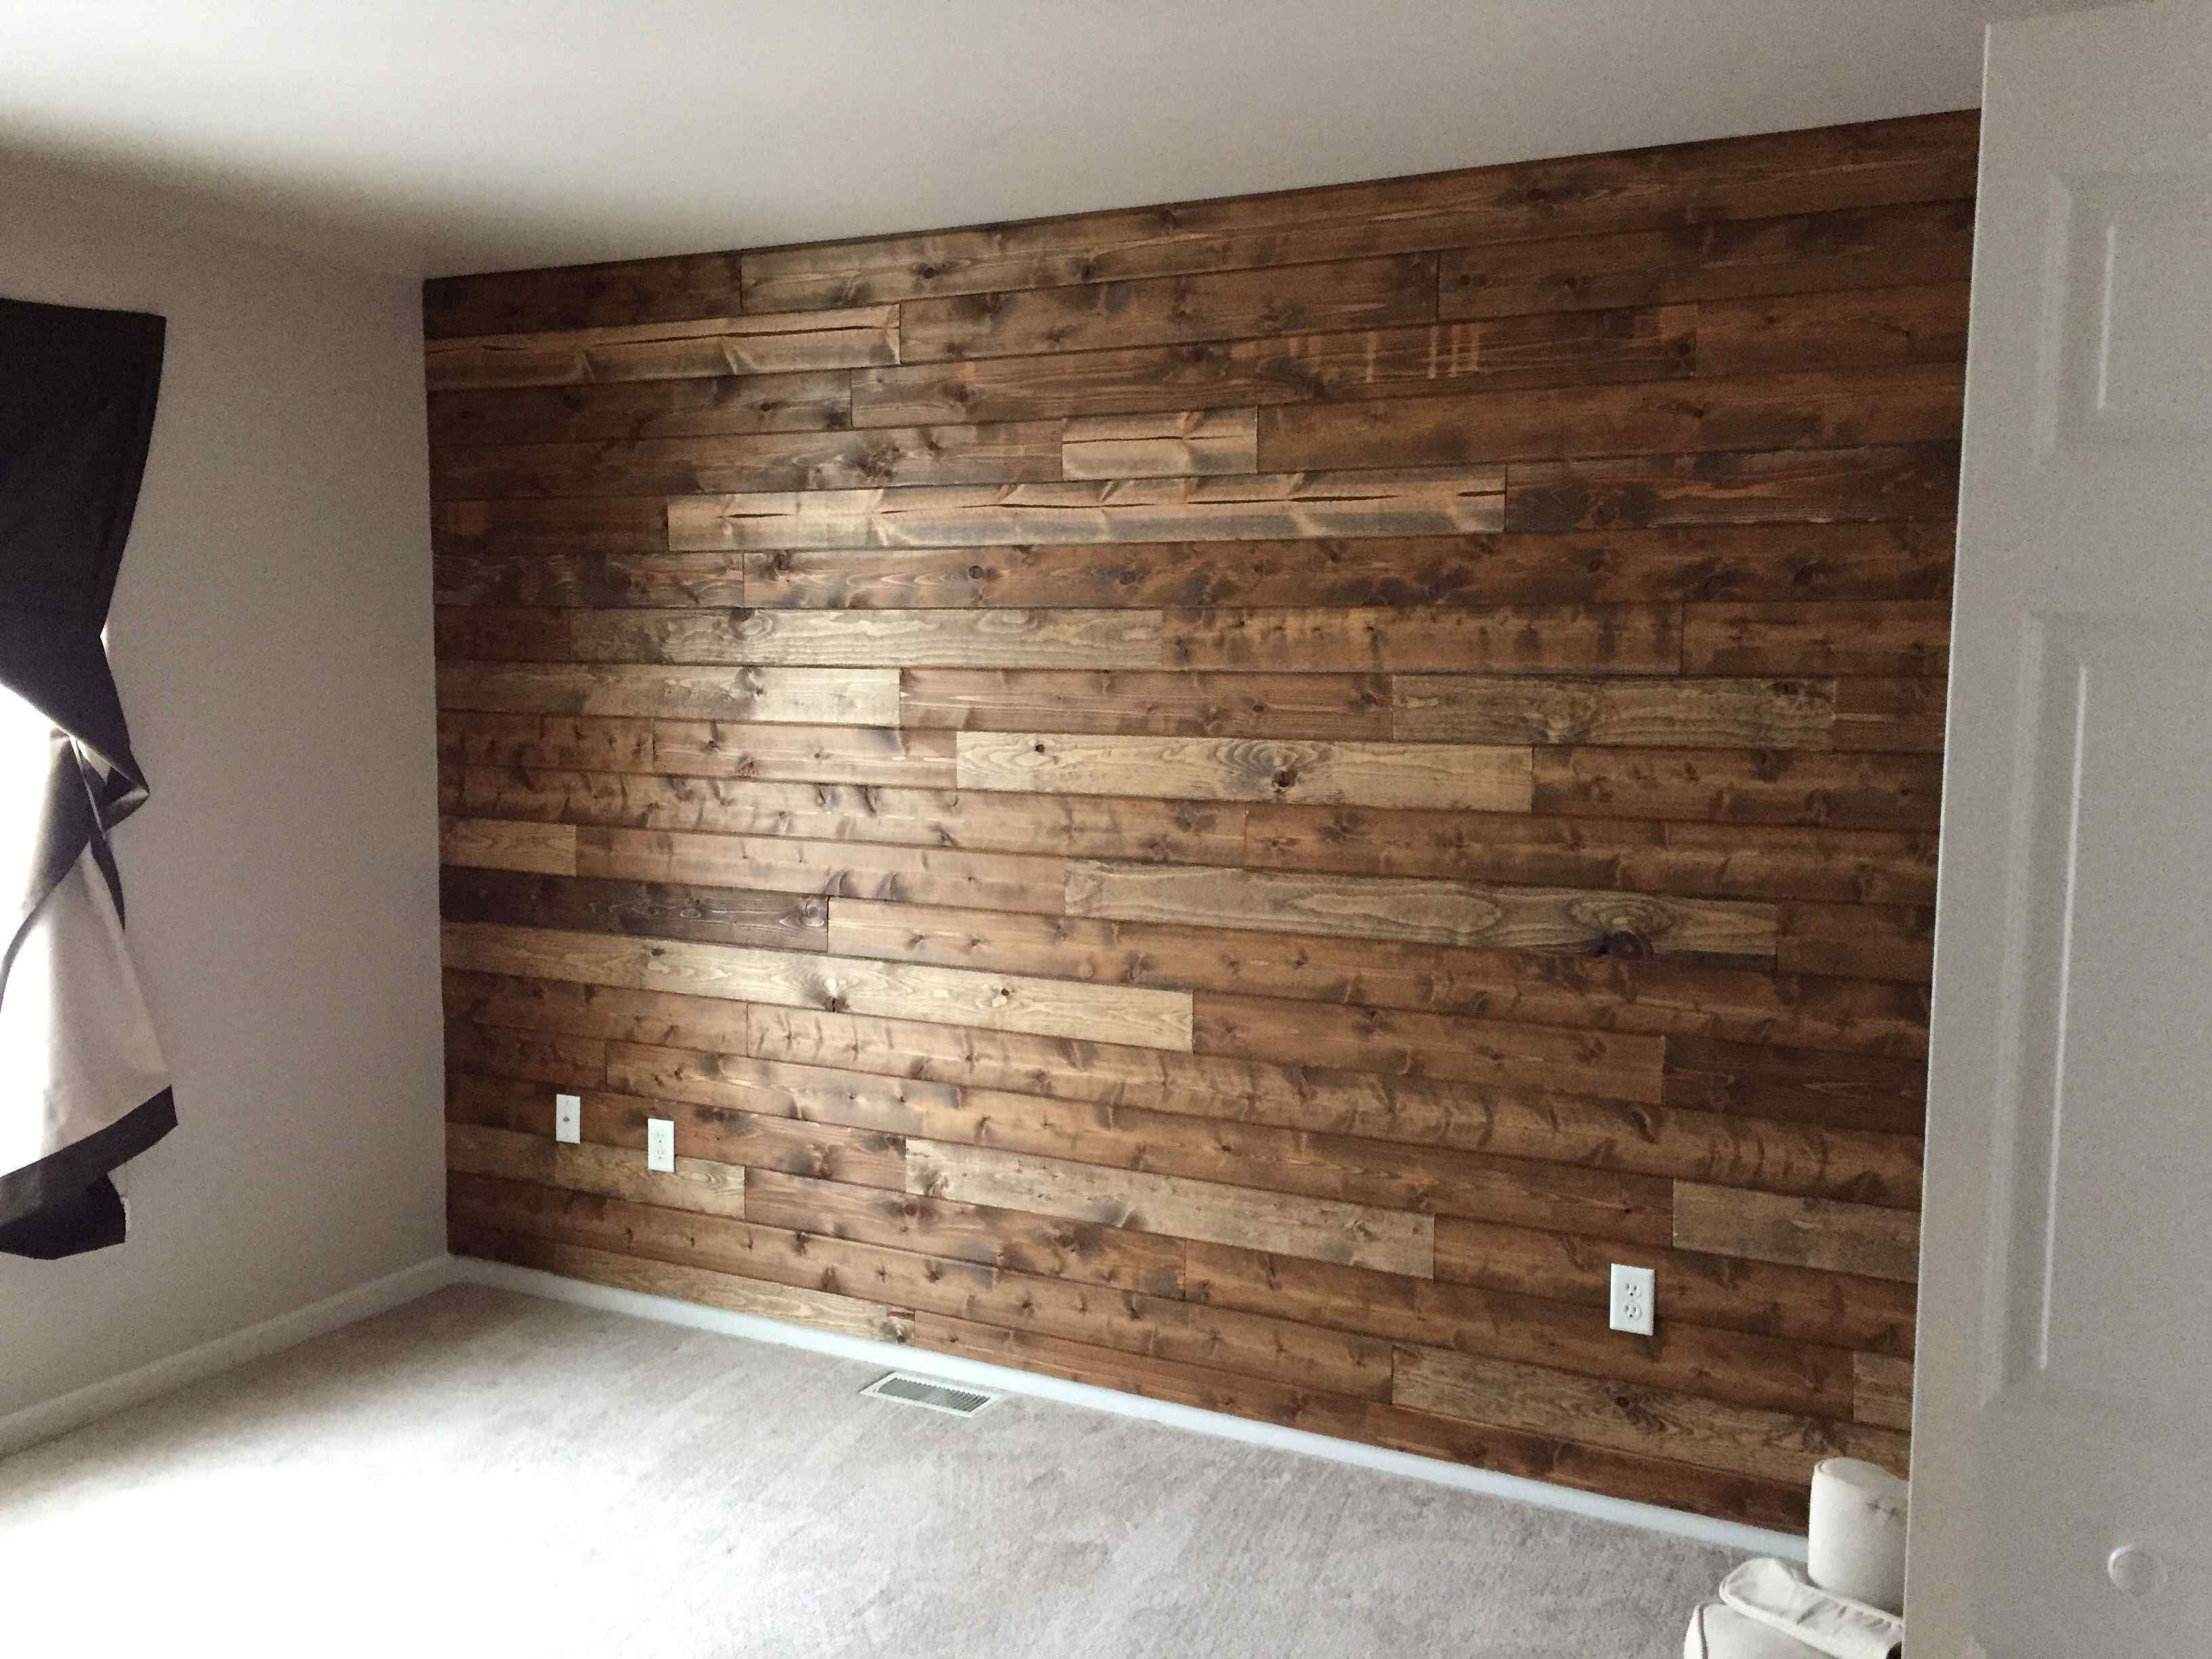 Things Your Lovely Rustic Basement Ideas Diy Accent Walls Doesn T Tell You Canberkarac Com Wooden Accent Wall Accent Walls In Living Room Wood Wall Decor